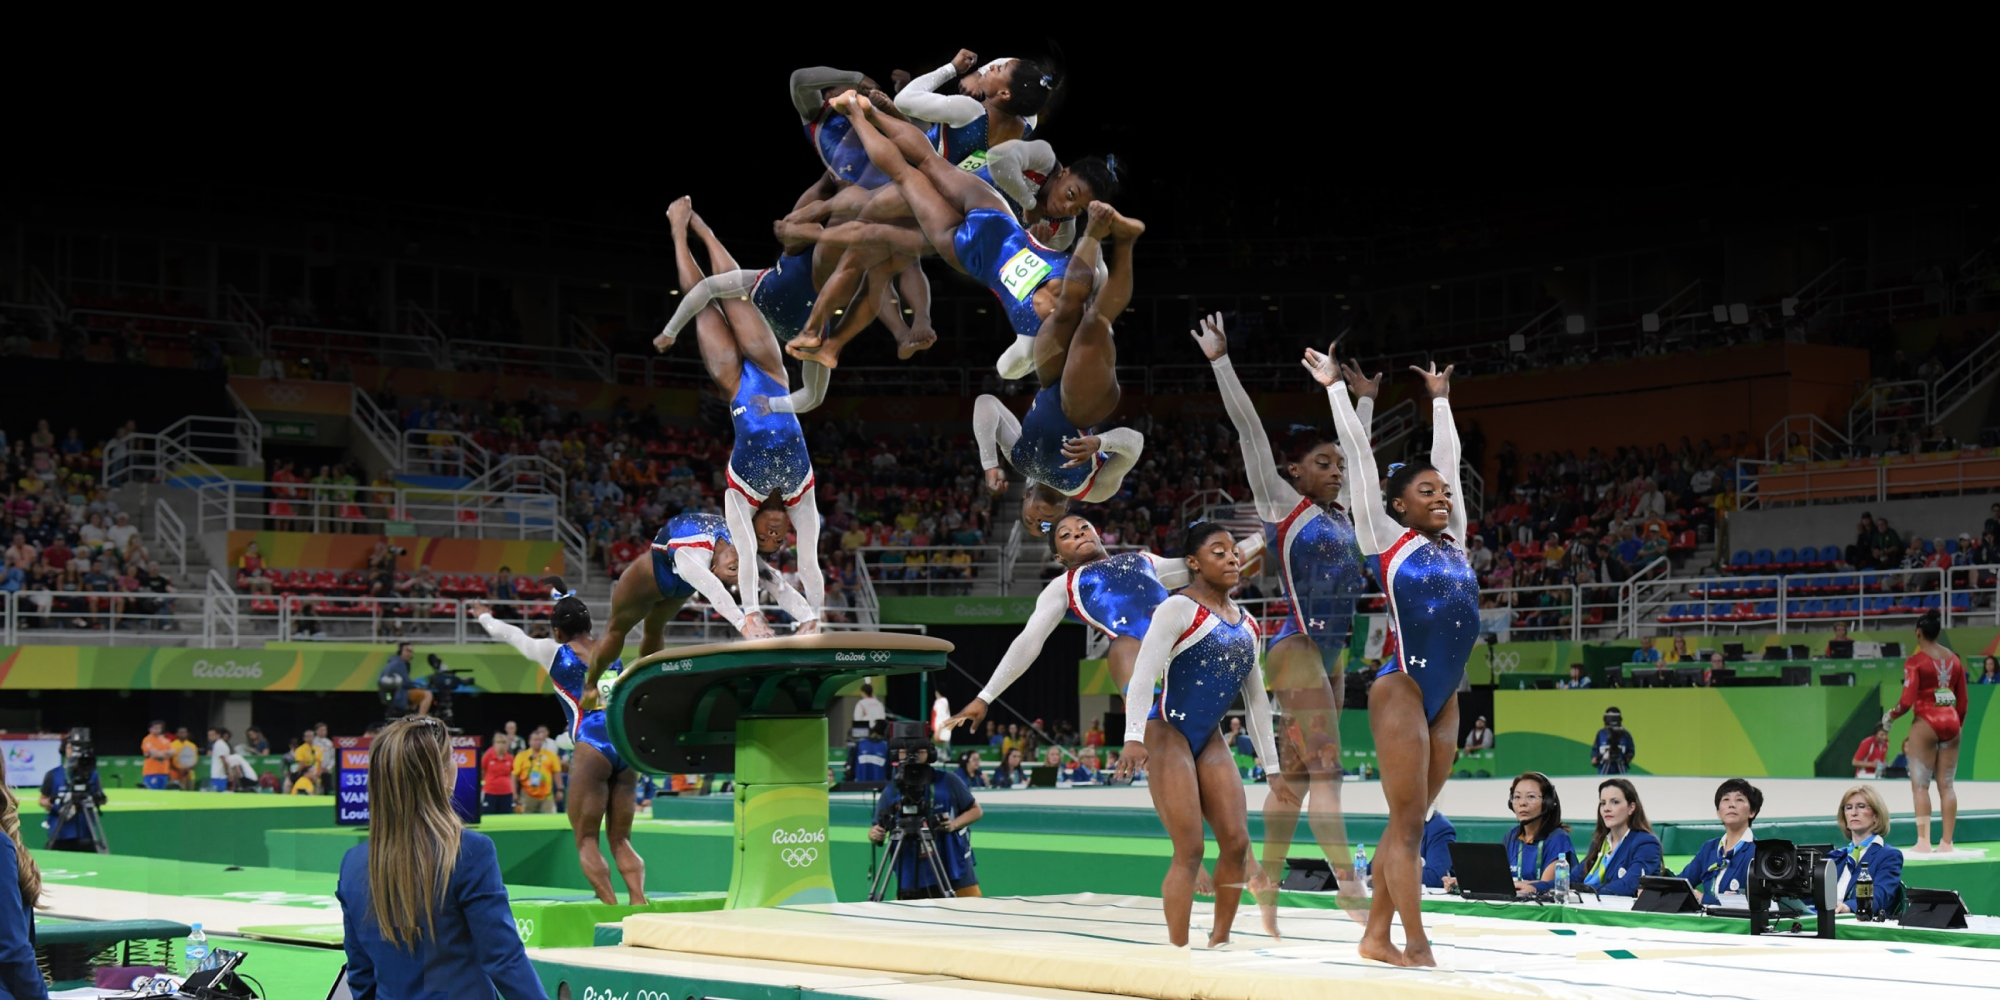 Photo composite of Simone Biles performing an Amanar Vault during the Olympic games